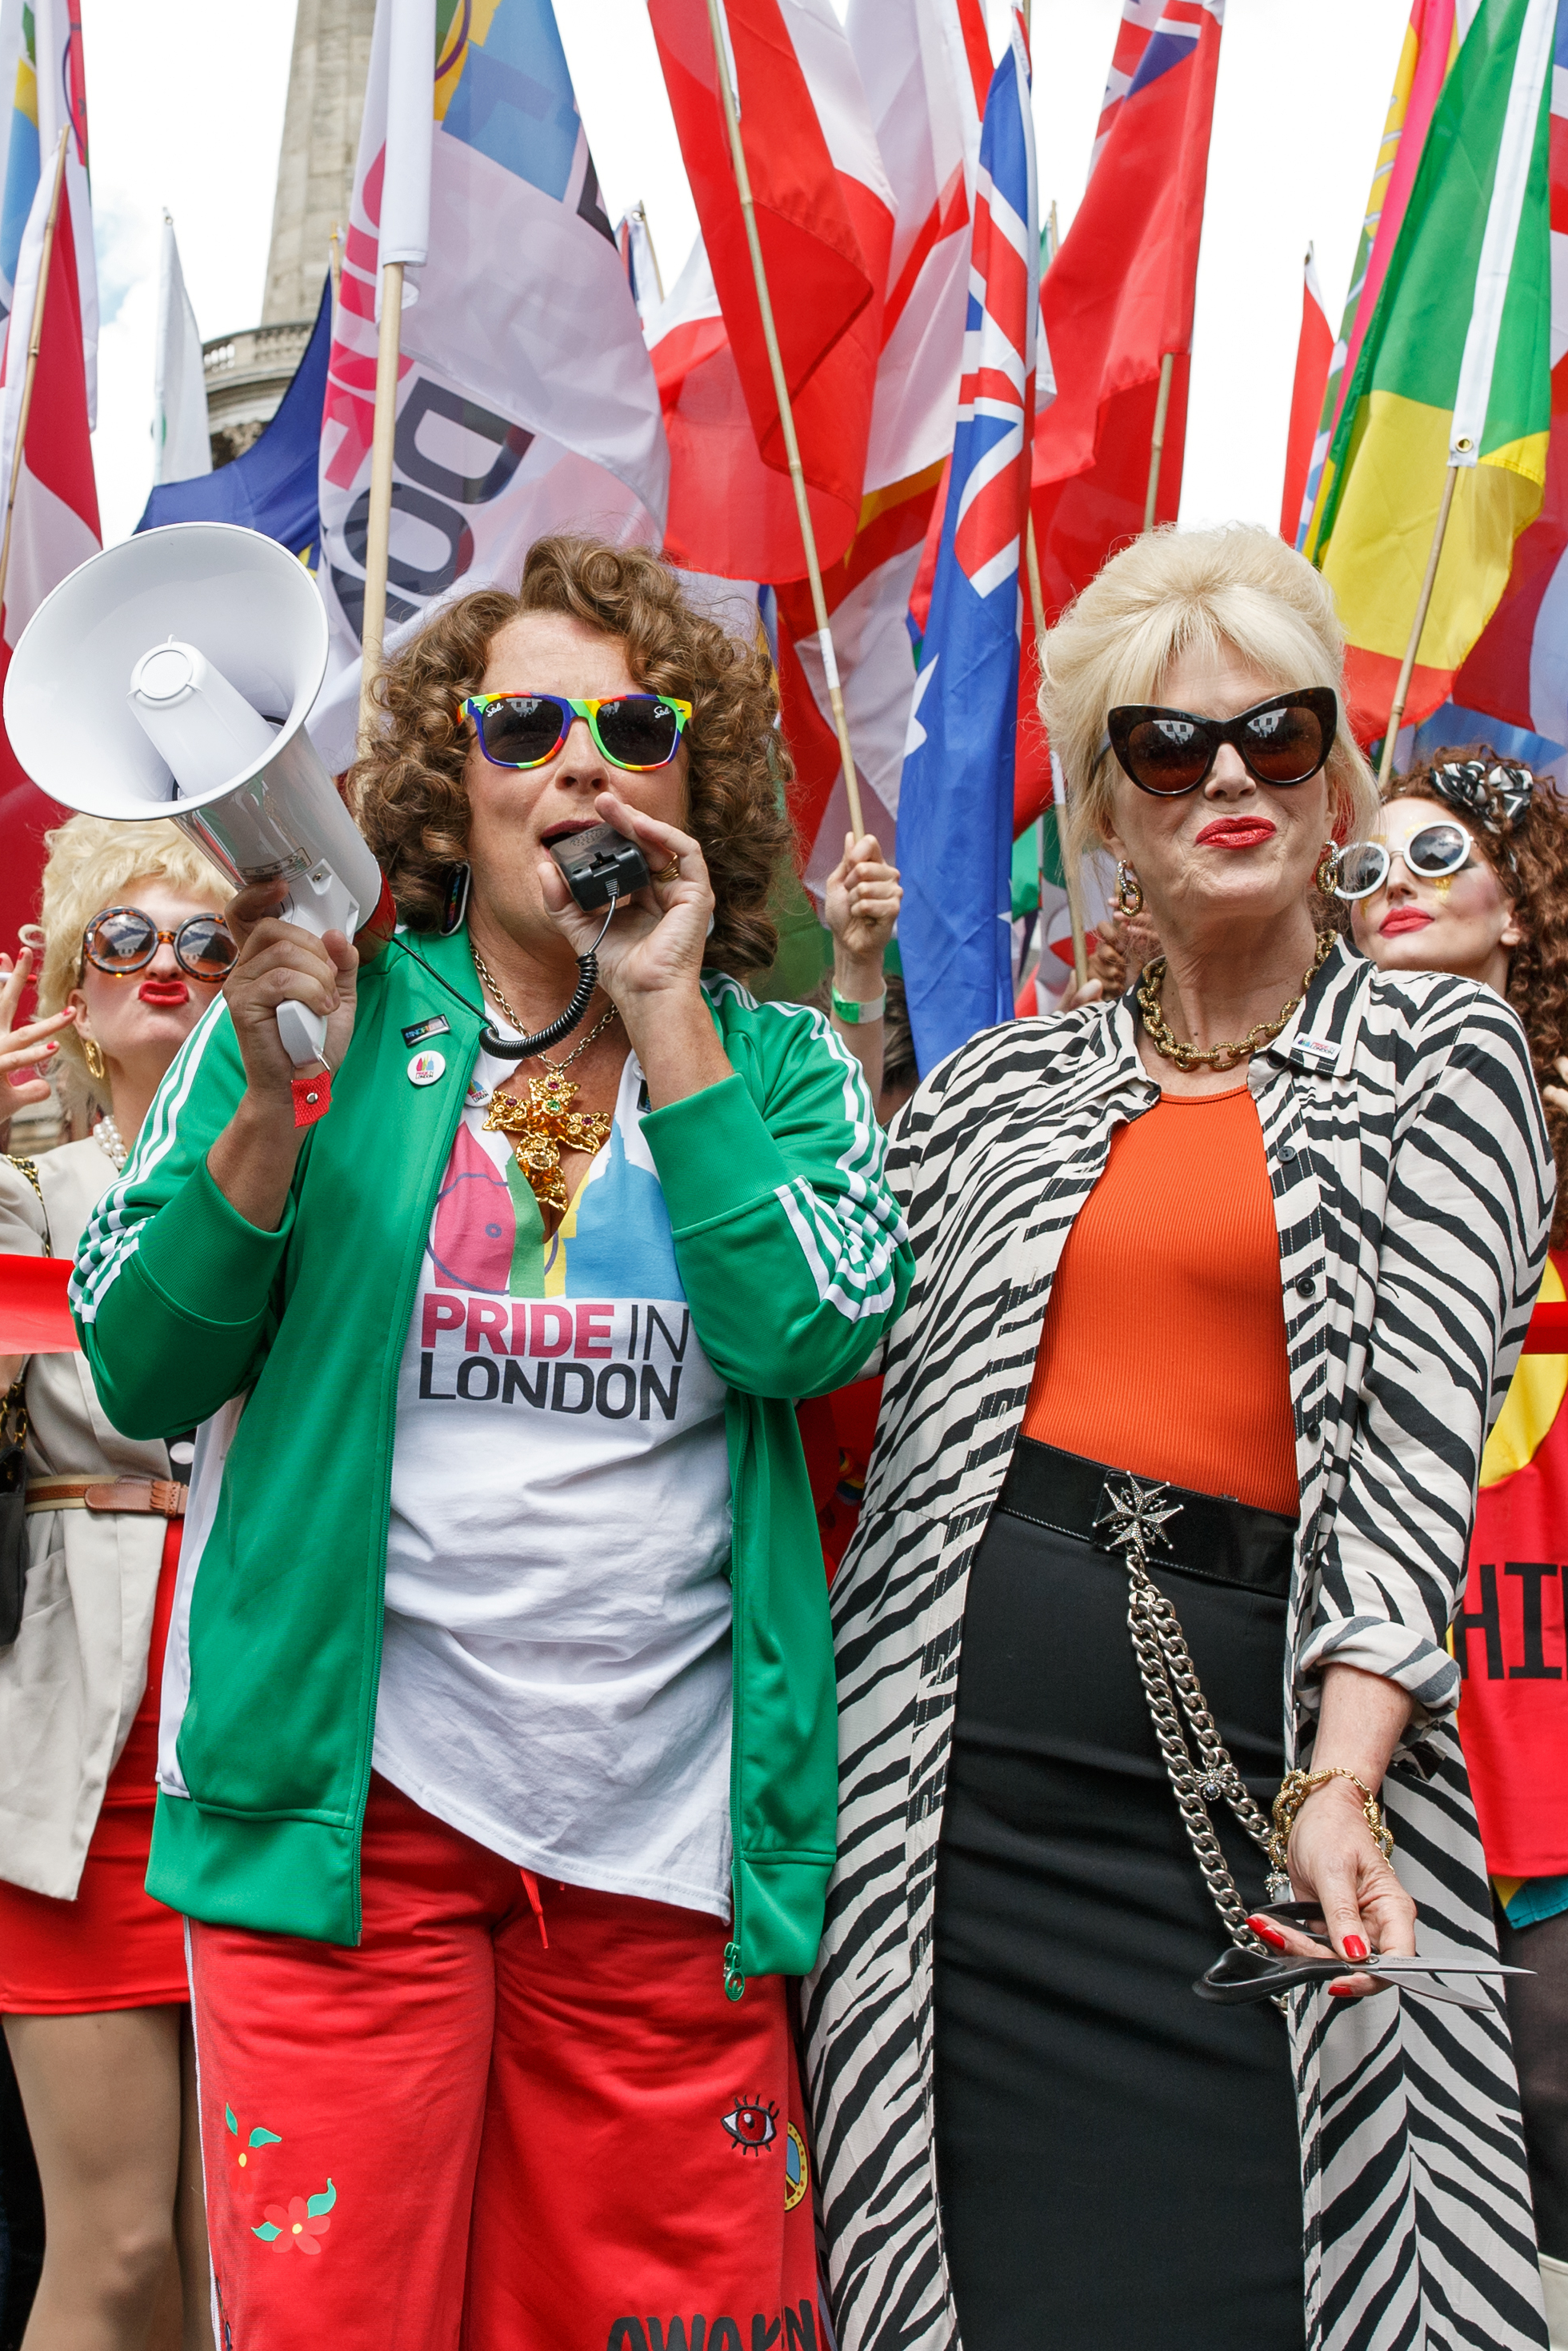 Pride_in_London_2016_-_Jennifer_Saunders_and_Joanna_Lumley_in_character_as_Edina_Monsoon_and_Patsy_Stone_(vertical_crop).png